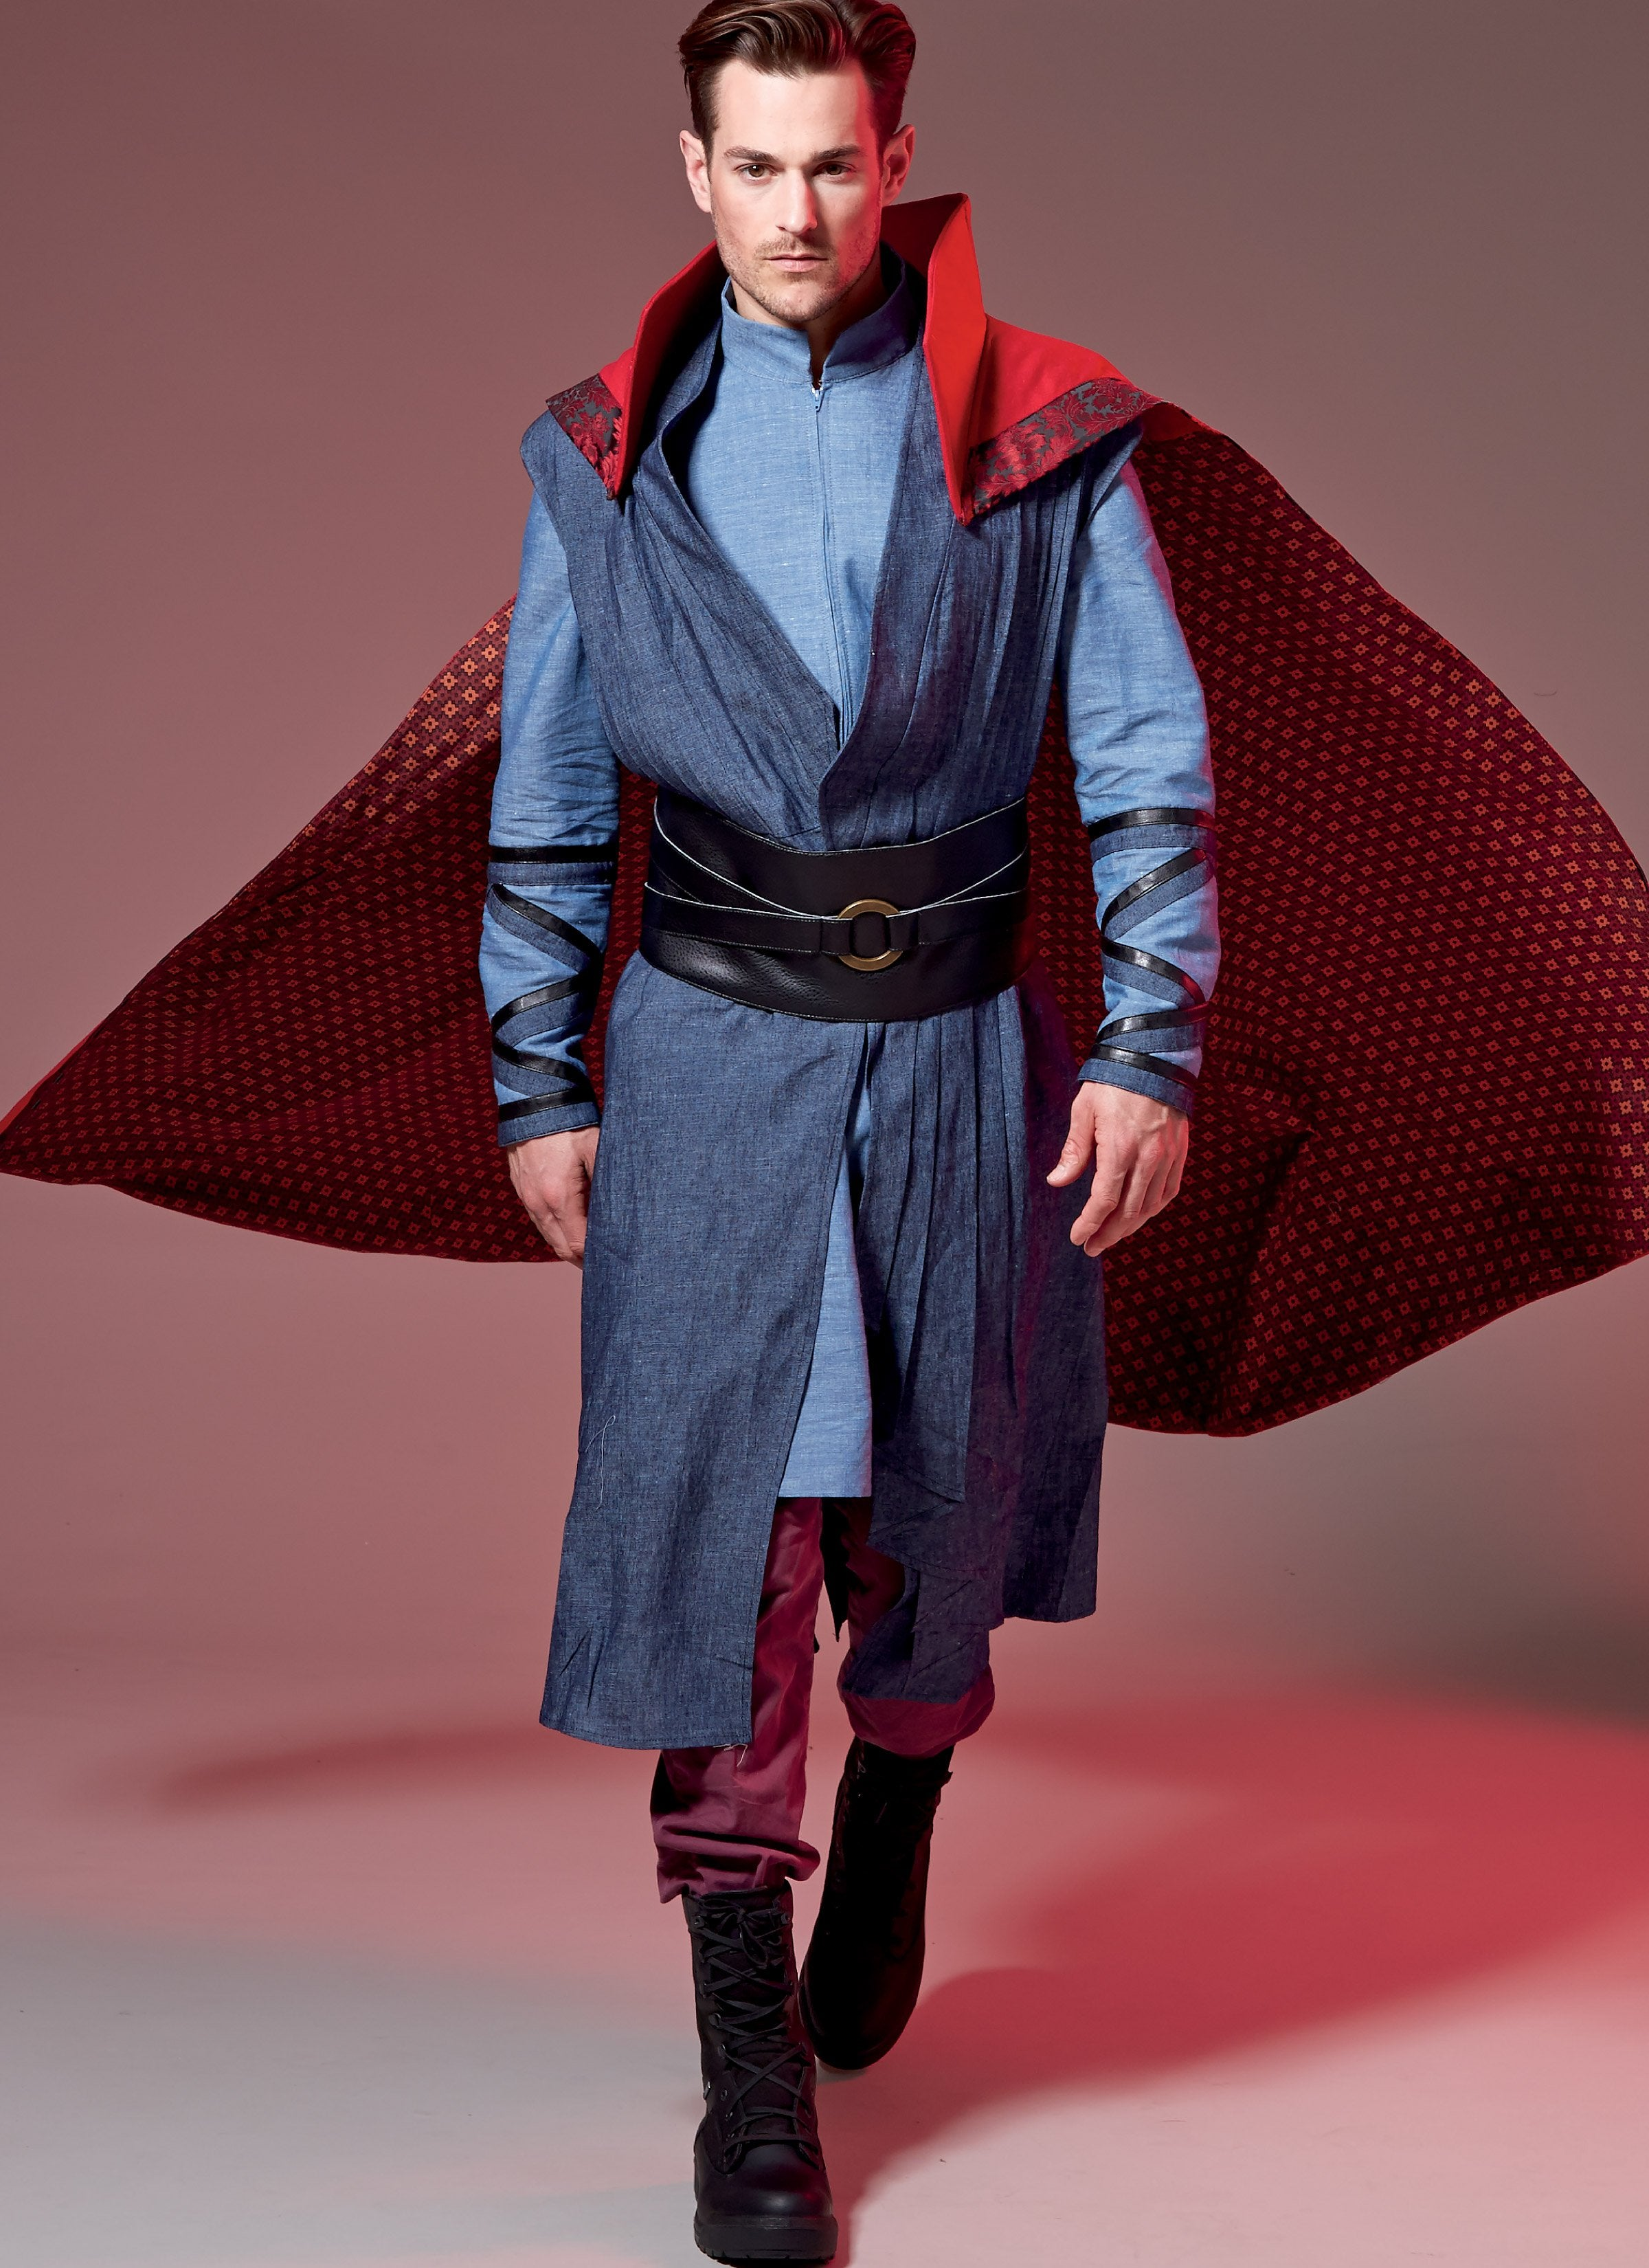 M7676 Men's Costume Pattern